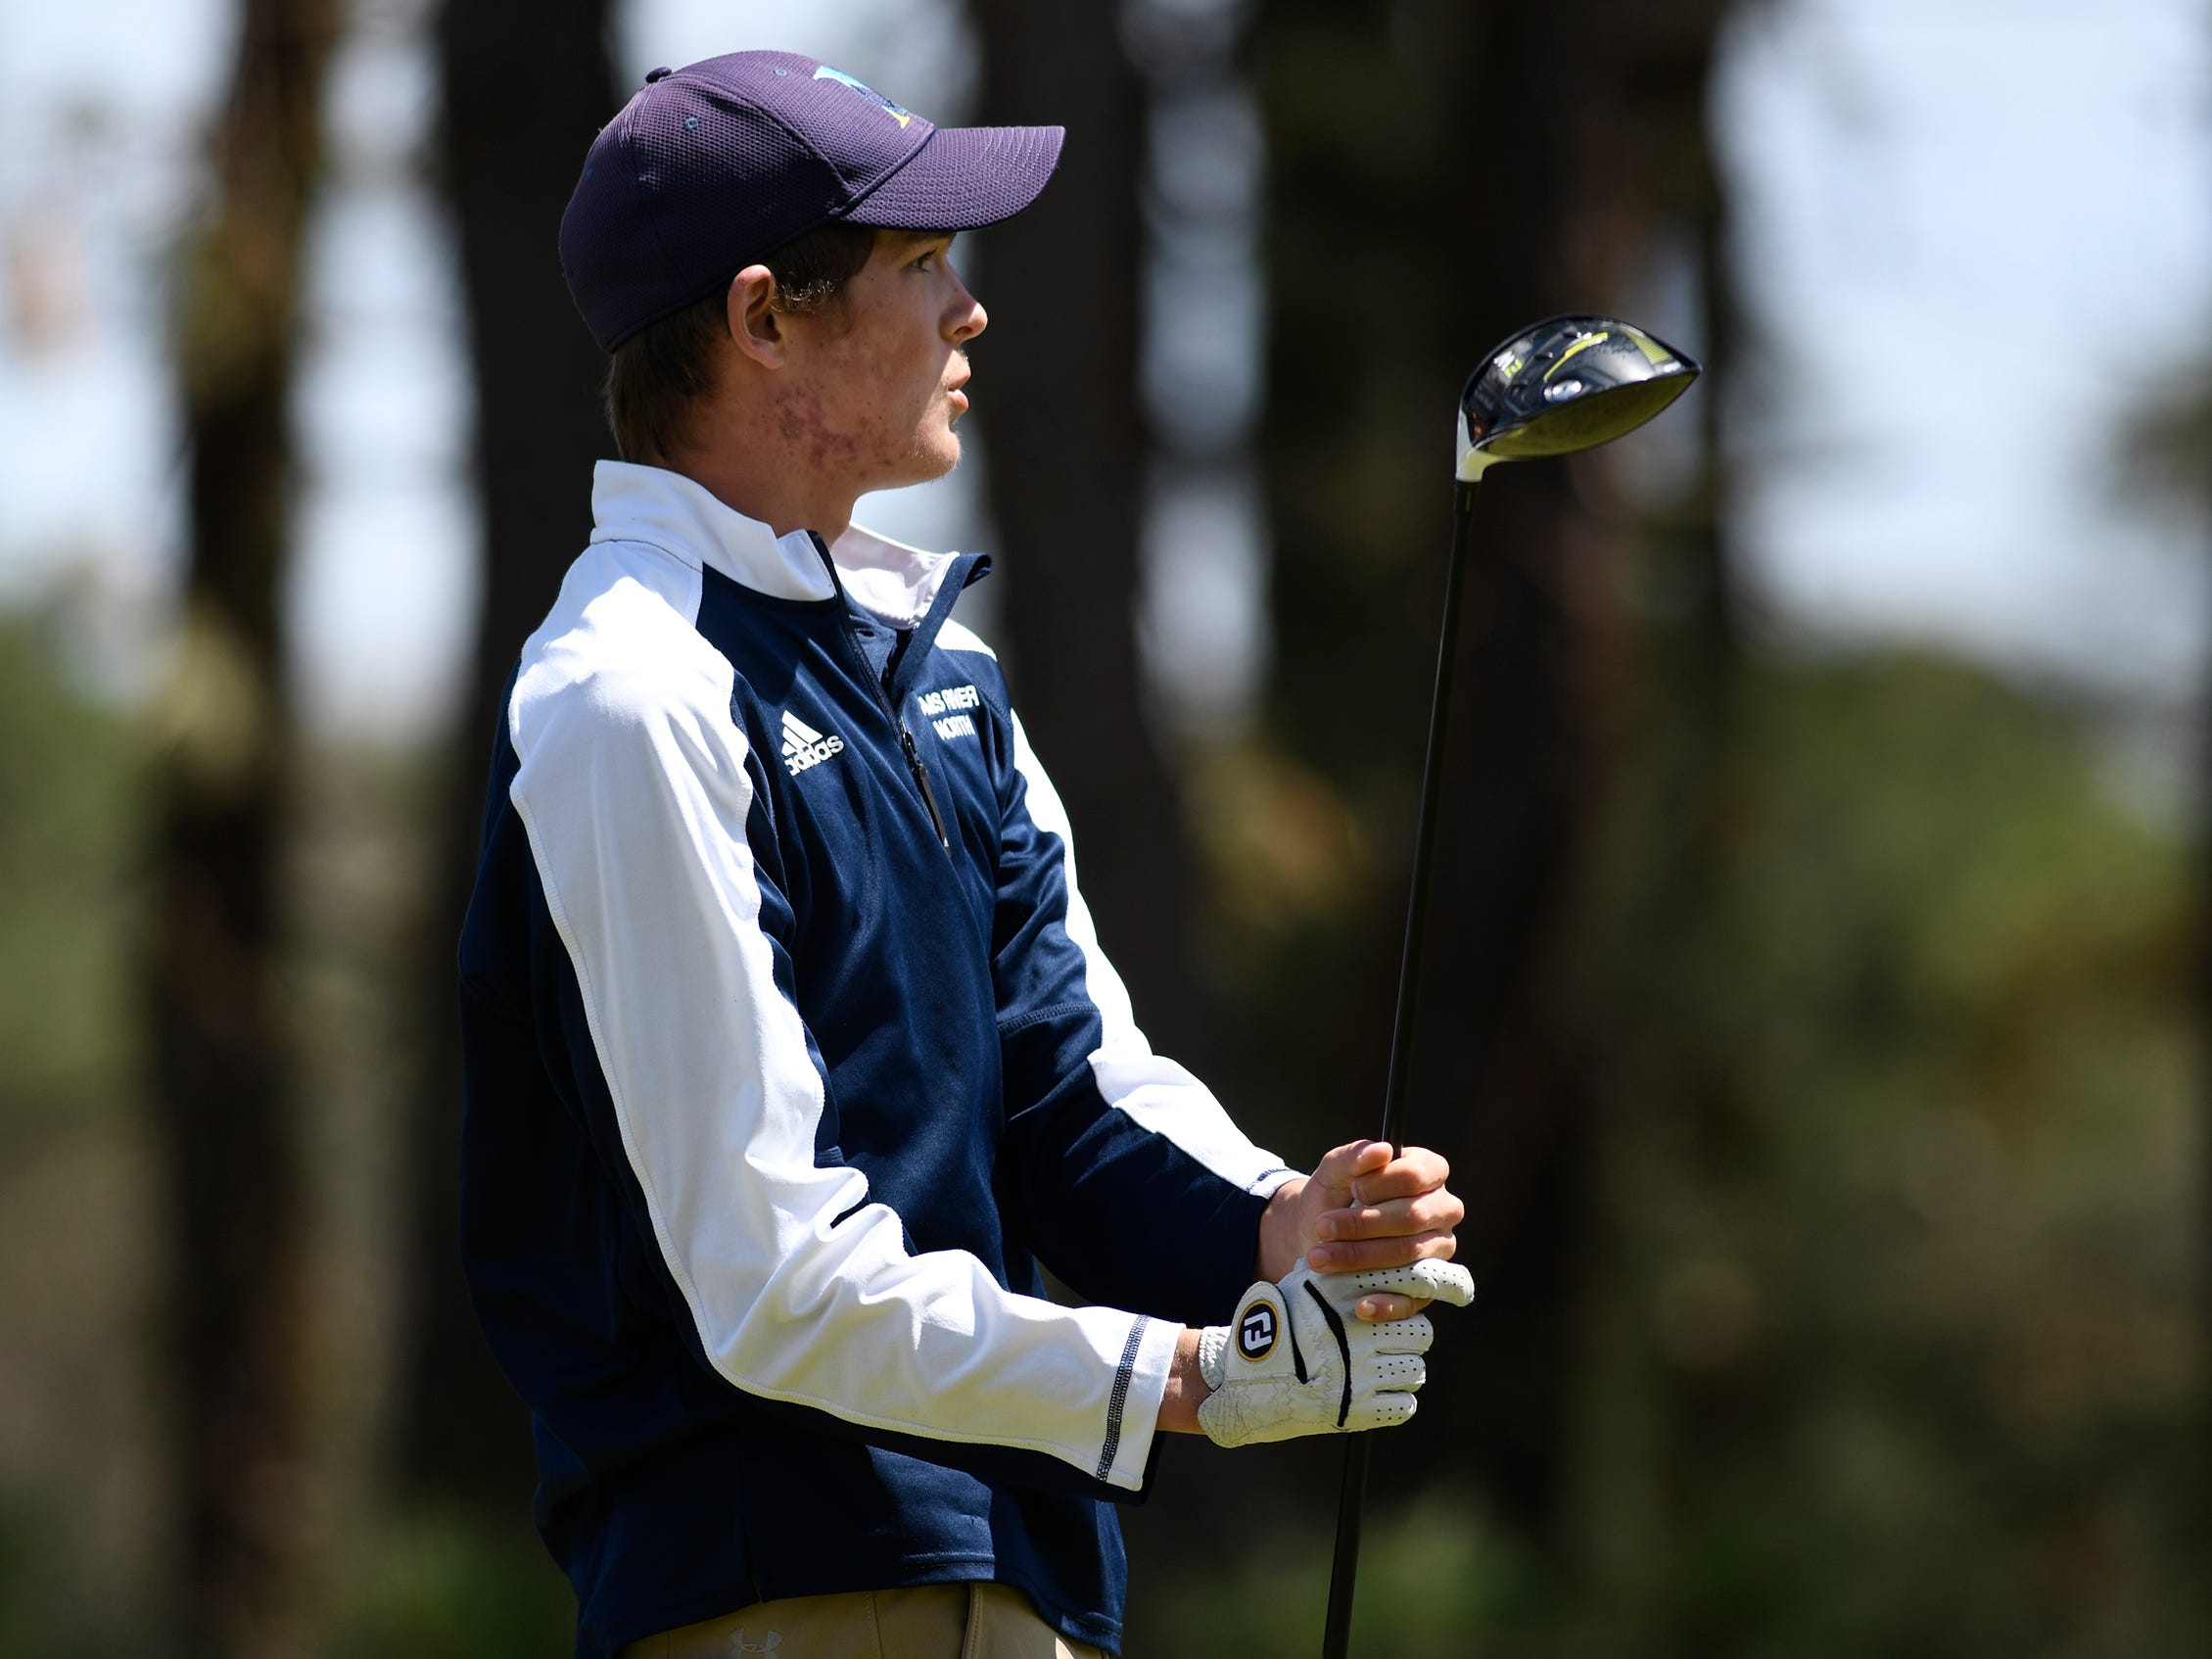 Connor Bekefi of Tome River North competes at the Ocean County Tournament on April 15, 2019,  at Sea Oaks in Little Egg Harbor.  Connor Bekefi emerged as the individual champion with a 3-over-par 75, four shots better than teammate Leo Kane. Toms River North successfully defended its team title, posting a total of 336, which was 18 shots better than Southern. Brick Memorial finished third.